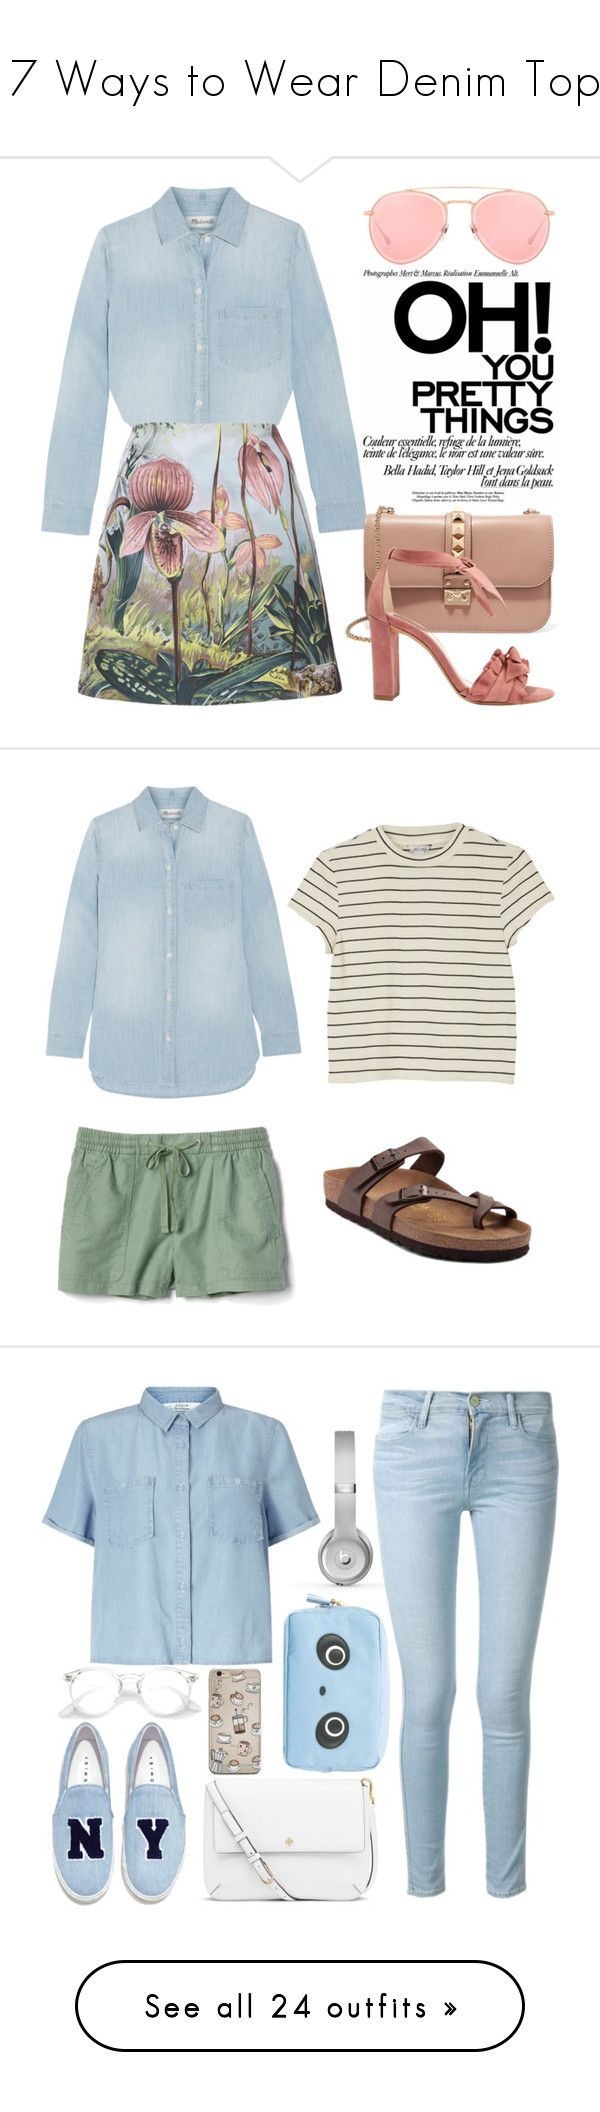 """""""17 Ways to Wear Denim Tops"""" by polyvore-editorial ❤ liked on Polyvore featuring waystowear, denimtops, Madewell, ADAM, Valentino, Alexandre Birman, Dita, tfp, Monki and Gap"""